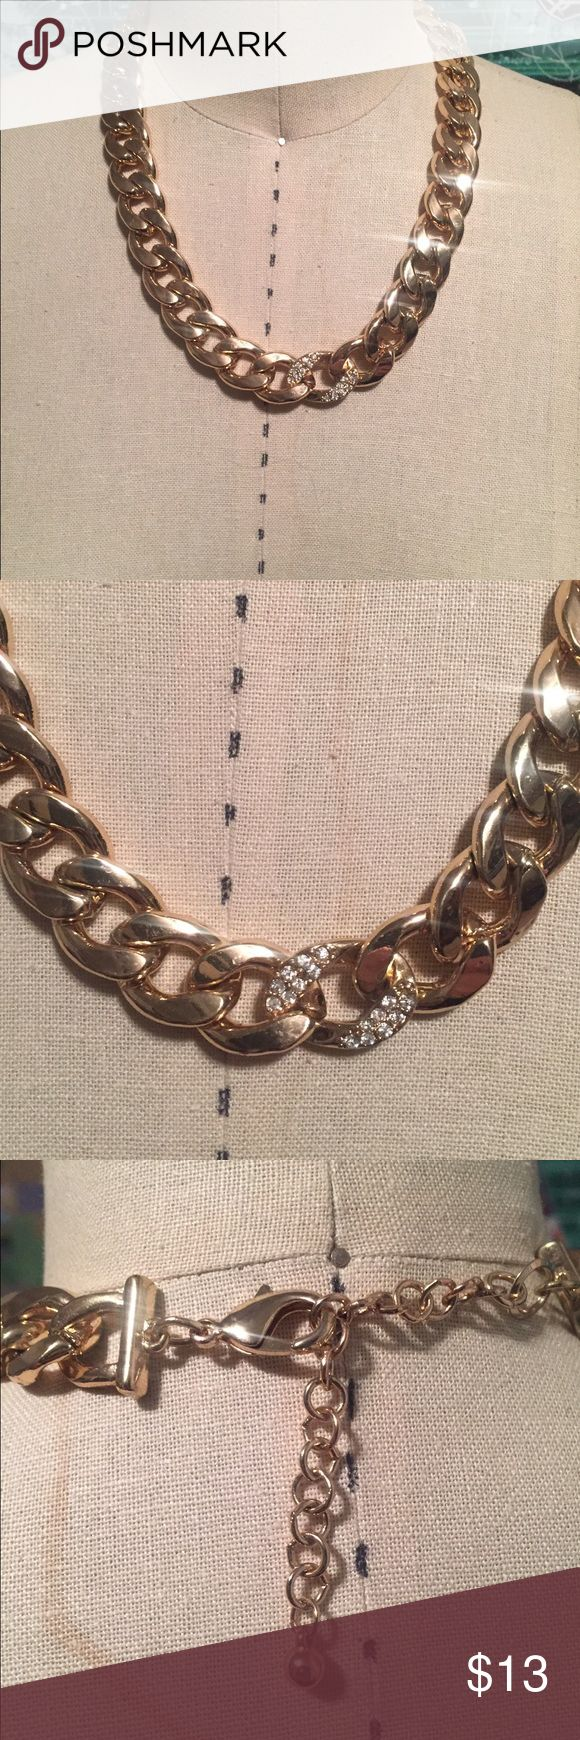 Gold necklace Thick gold chain necklace. One piece features gems stones. Macy's Jewelry Necklaces